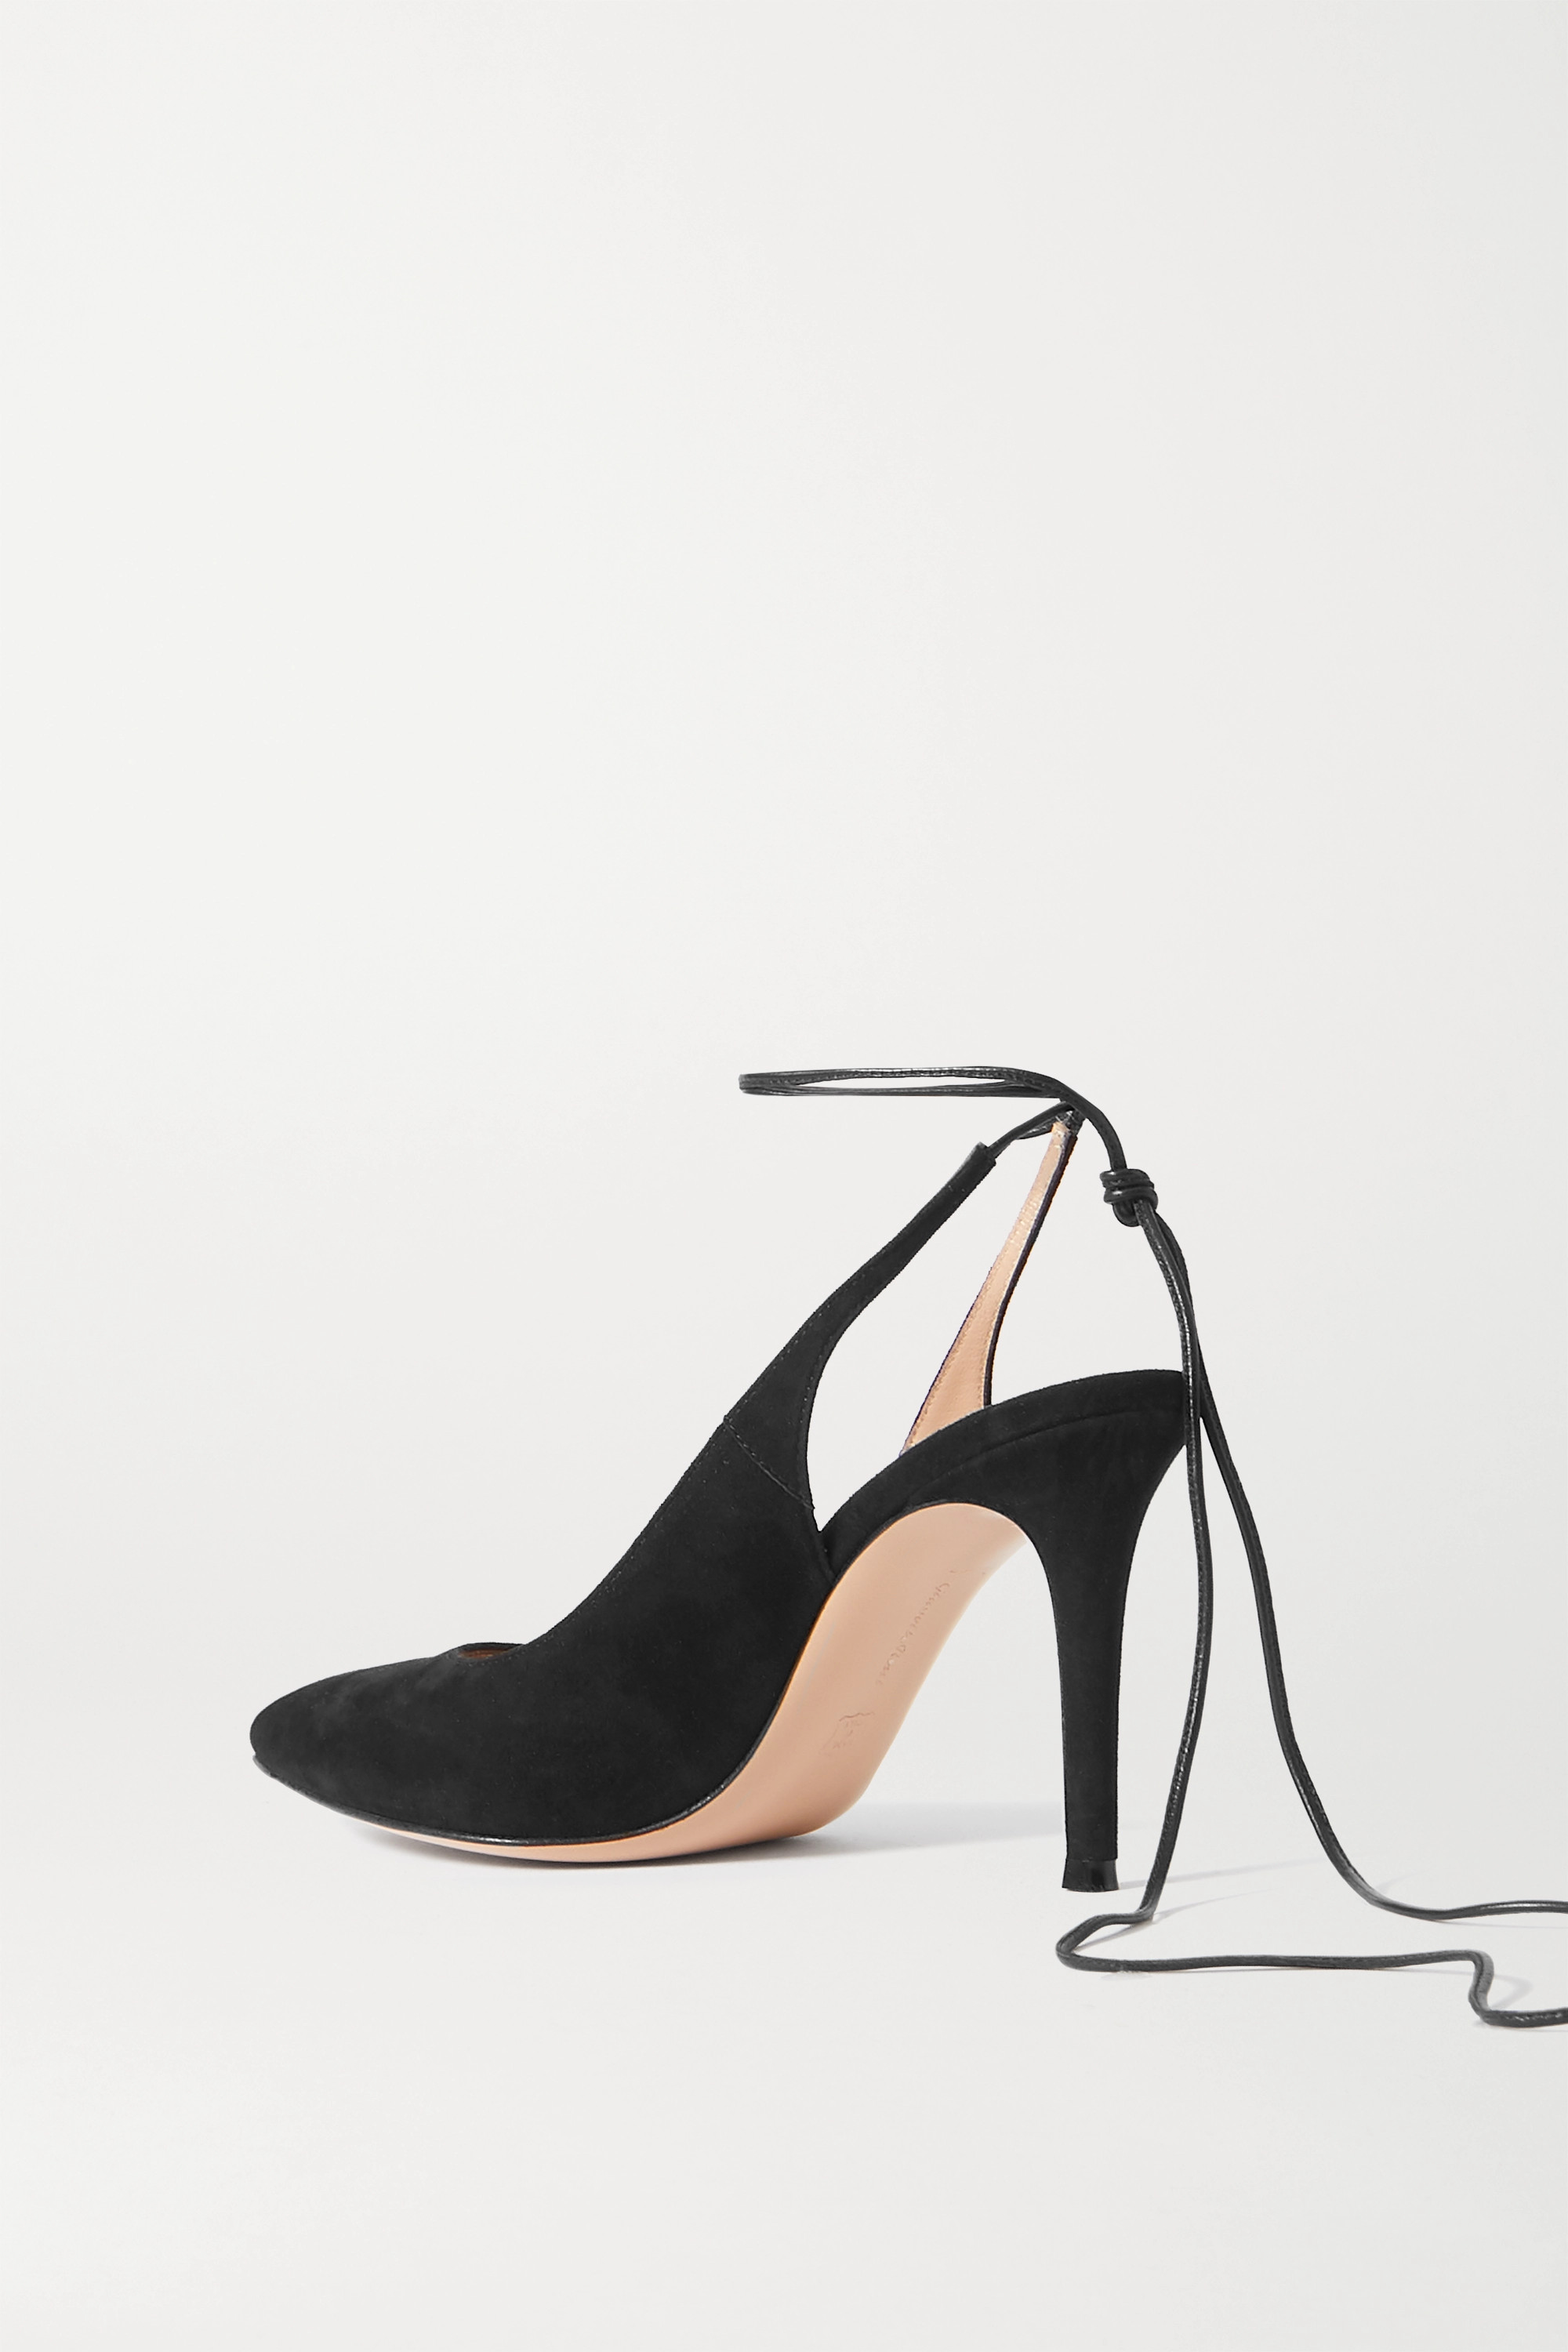 Gianvito Rossi 85 leather-trimmed suede pumps